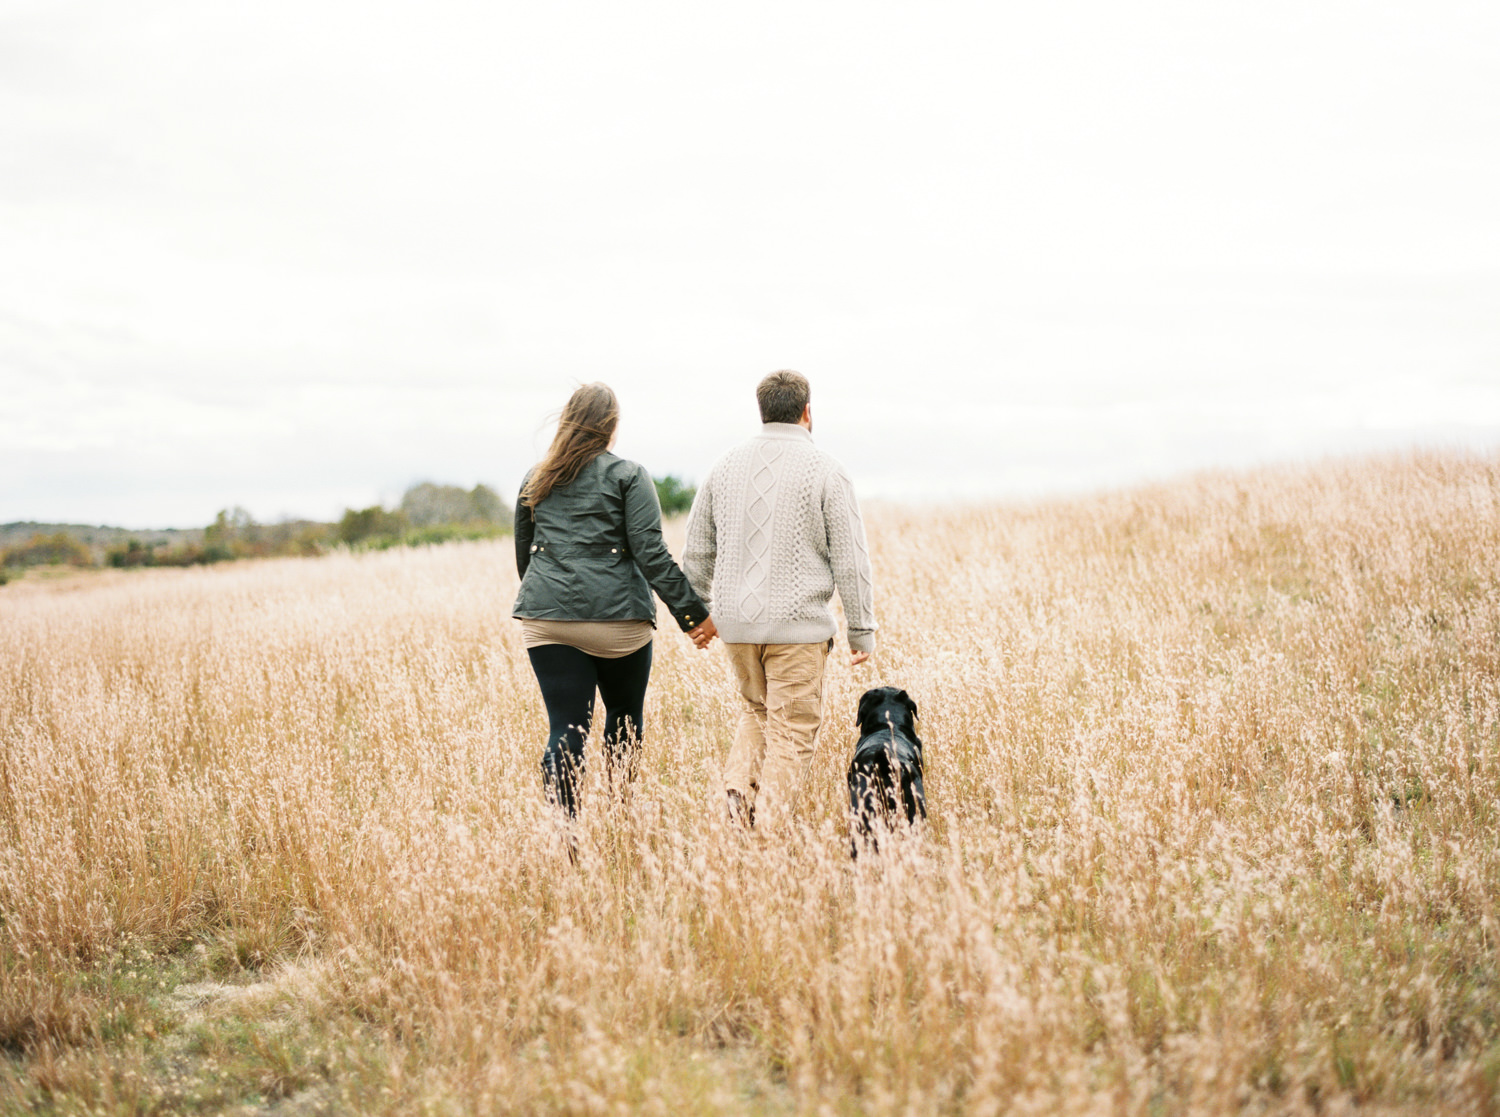 marionhphotography-marion_heurteboust-intimate_wedding_photographer-nantucket_island_events-sunday-walk-with-puppies